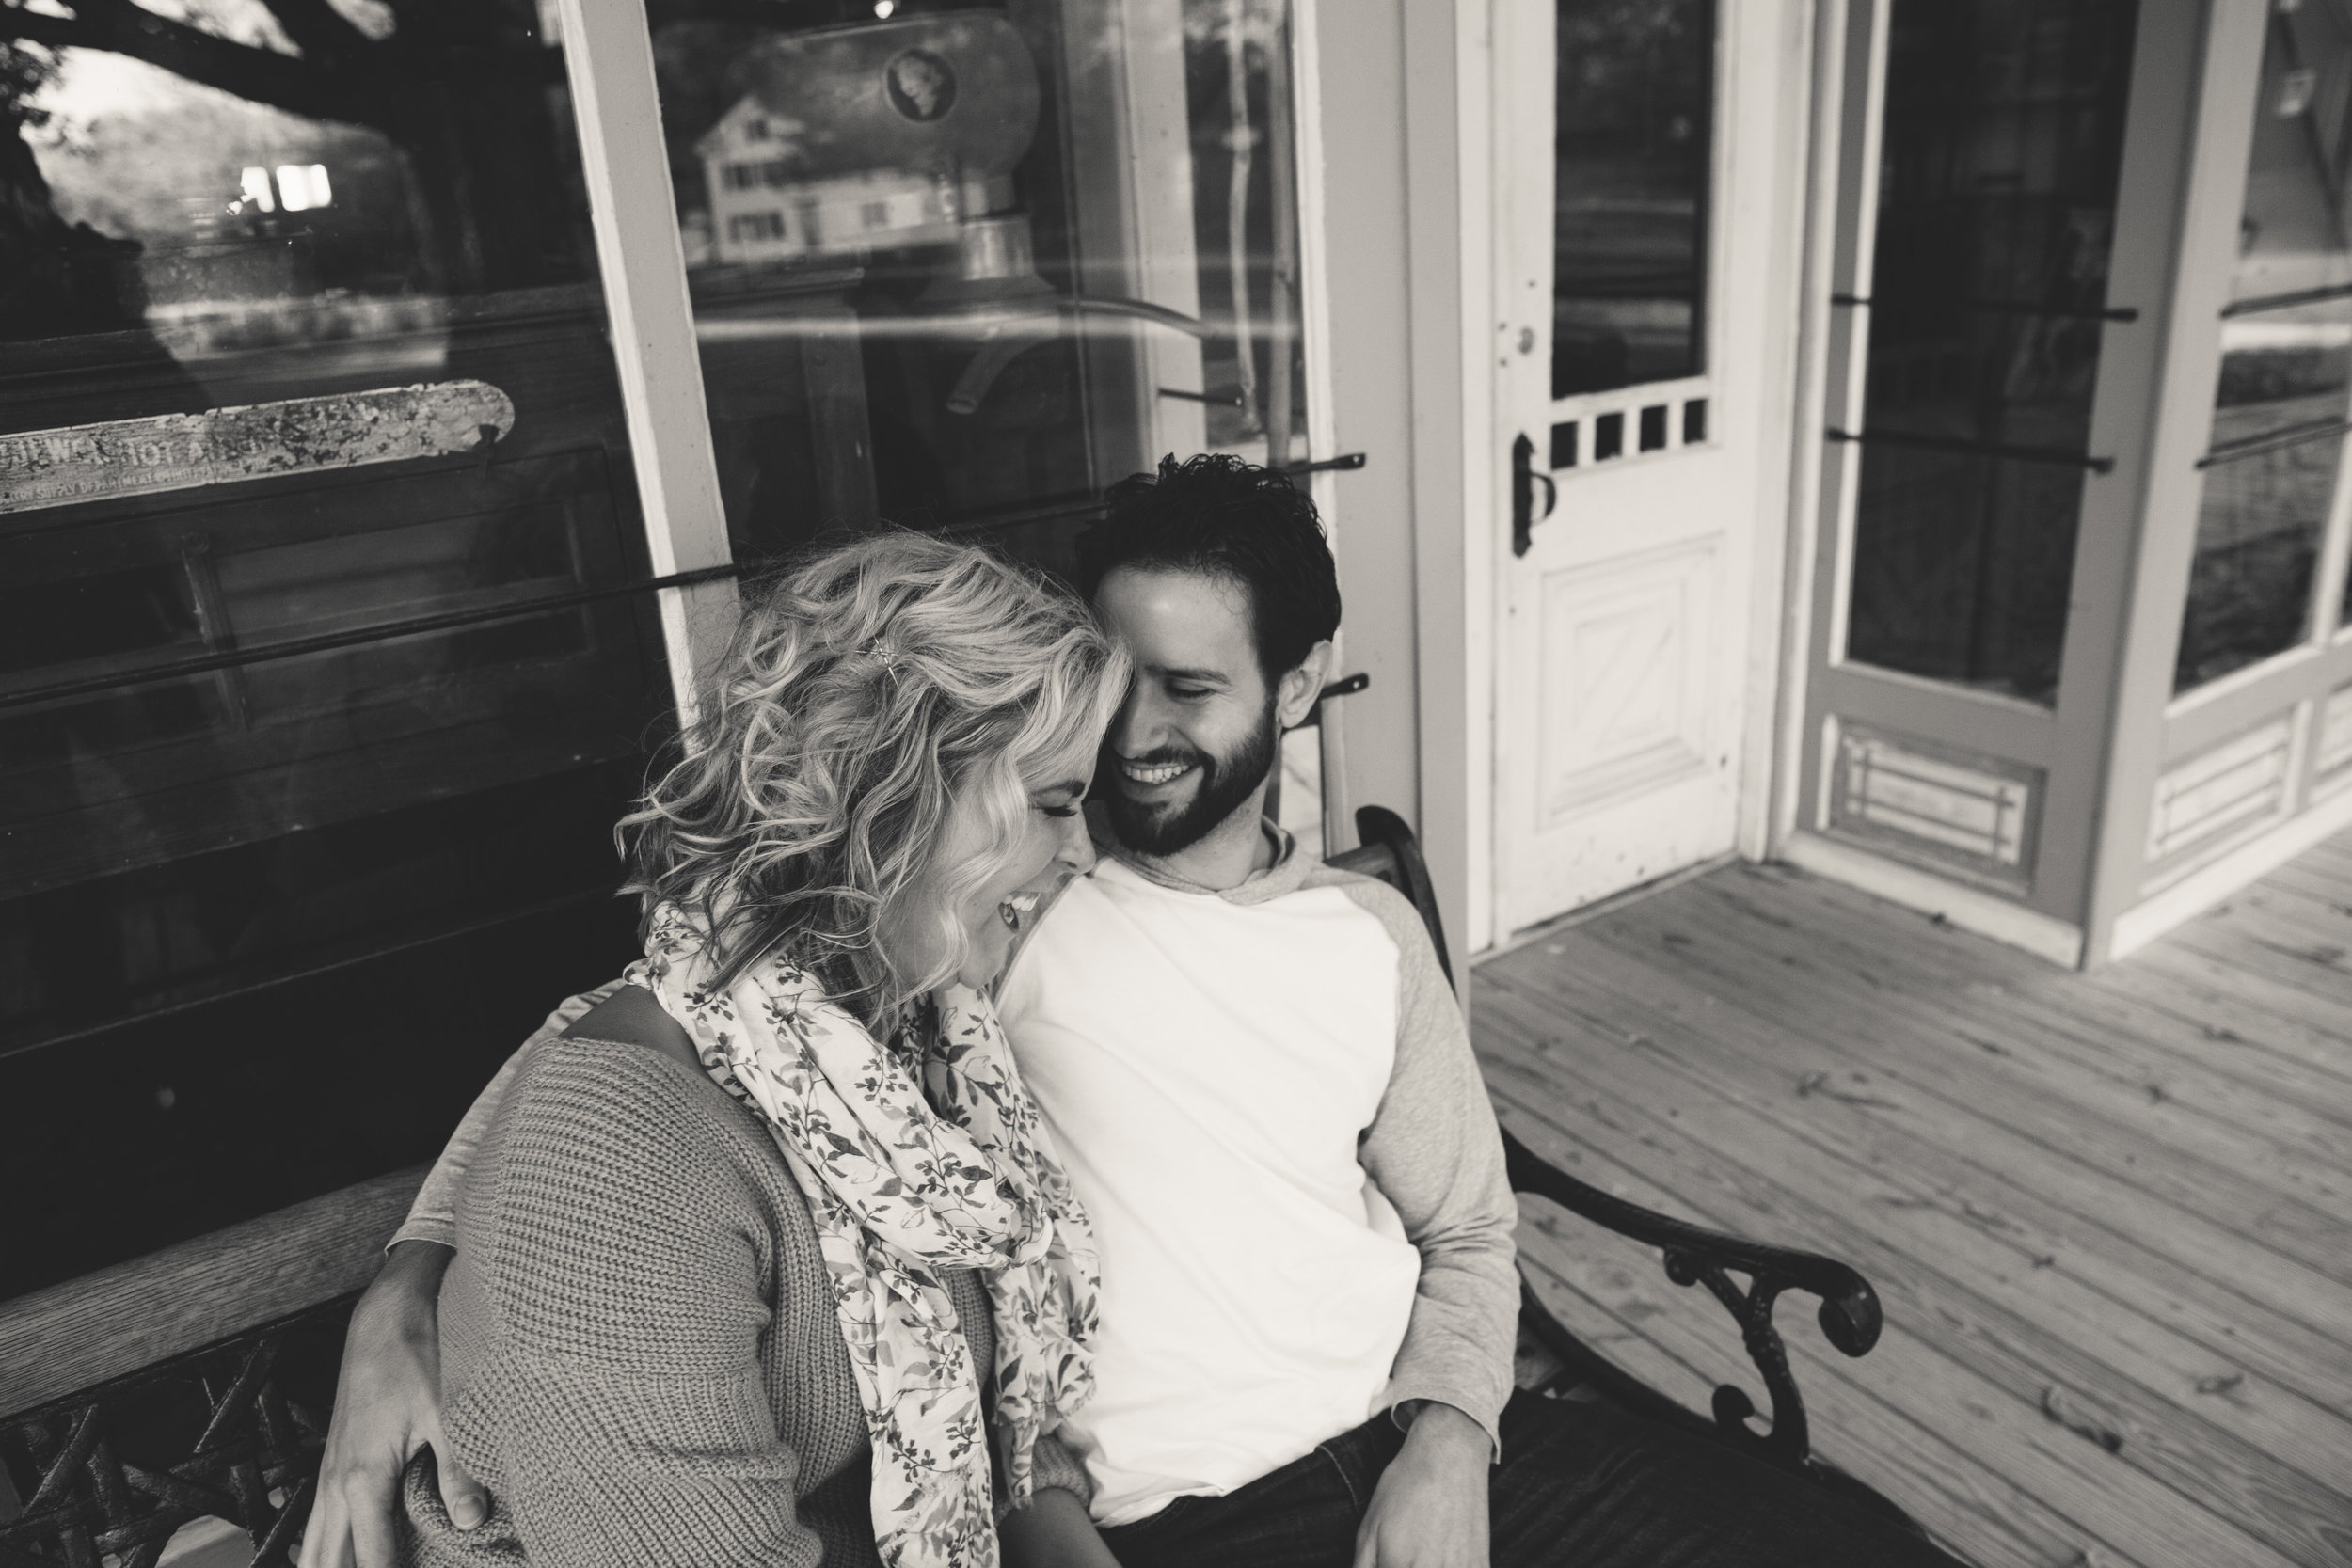 charltonpark_engagementsession_grandrapidsphotographer_grandrapids_hastings_michiganwedding_fallengagement_fallwedding_jdarlingphoto_jessicadarling_westmichiganphotographer_wedding_fall_rusticwedding  008.jpg